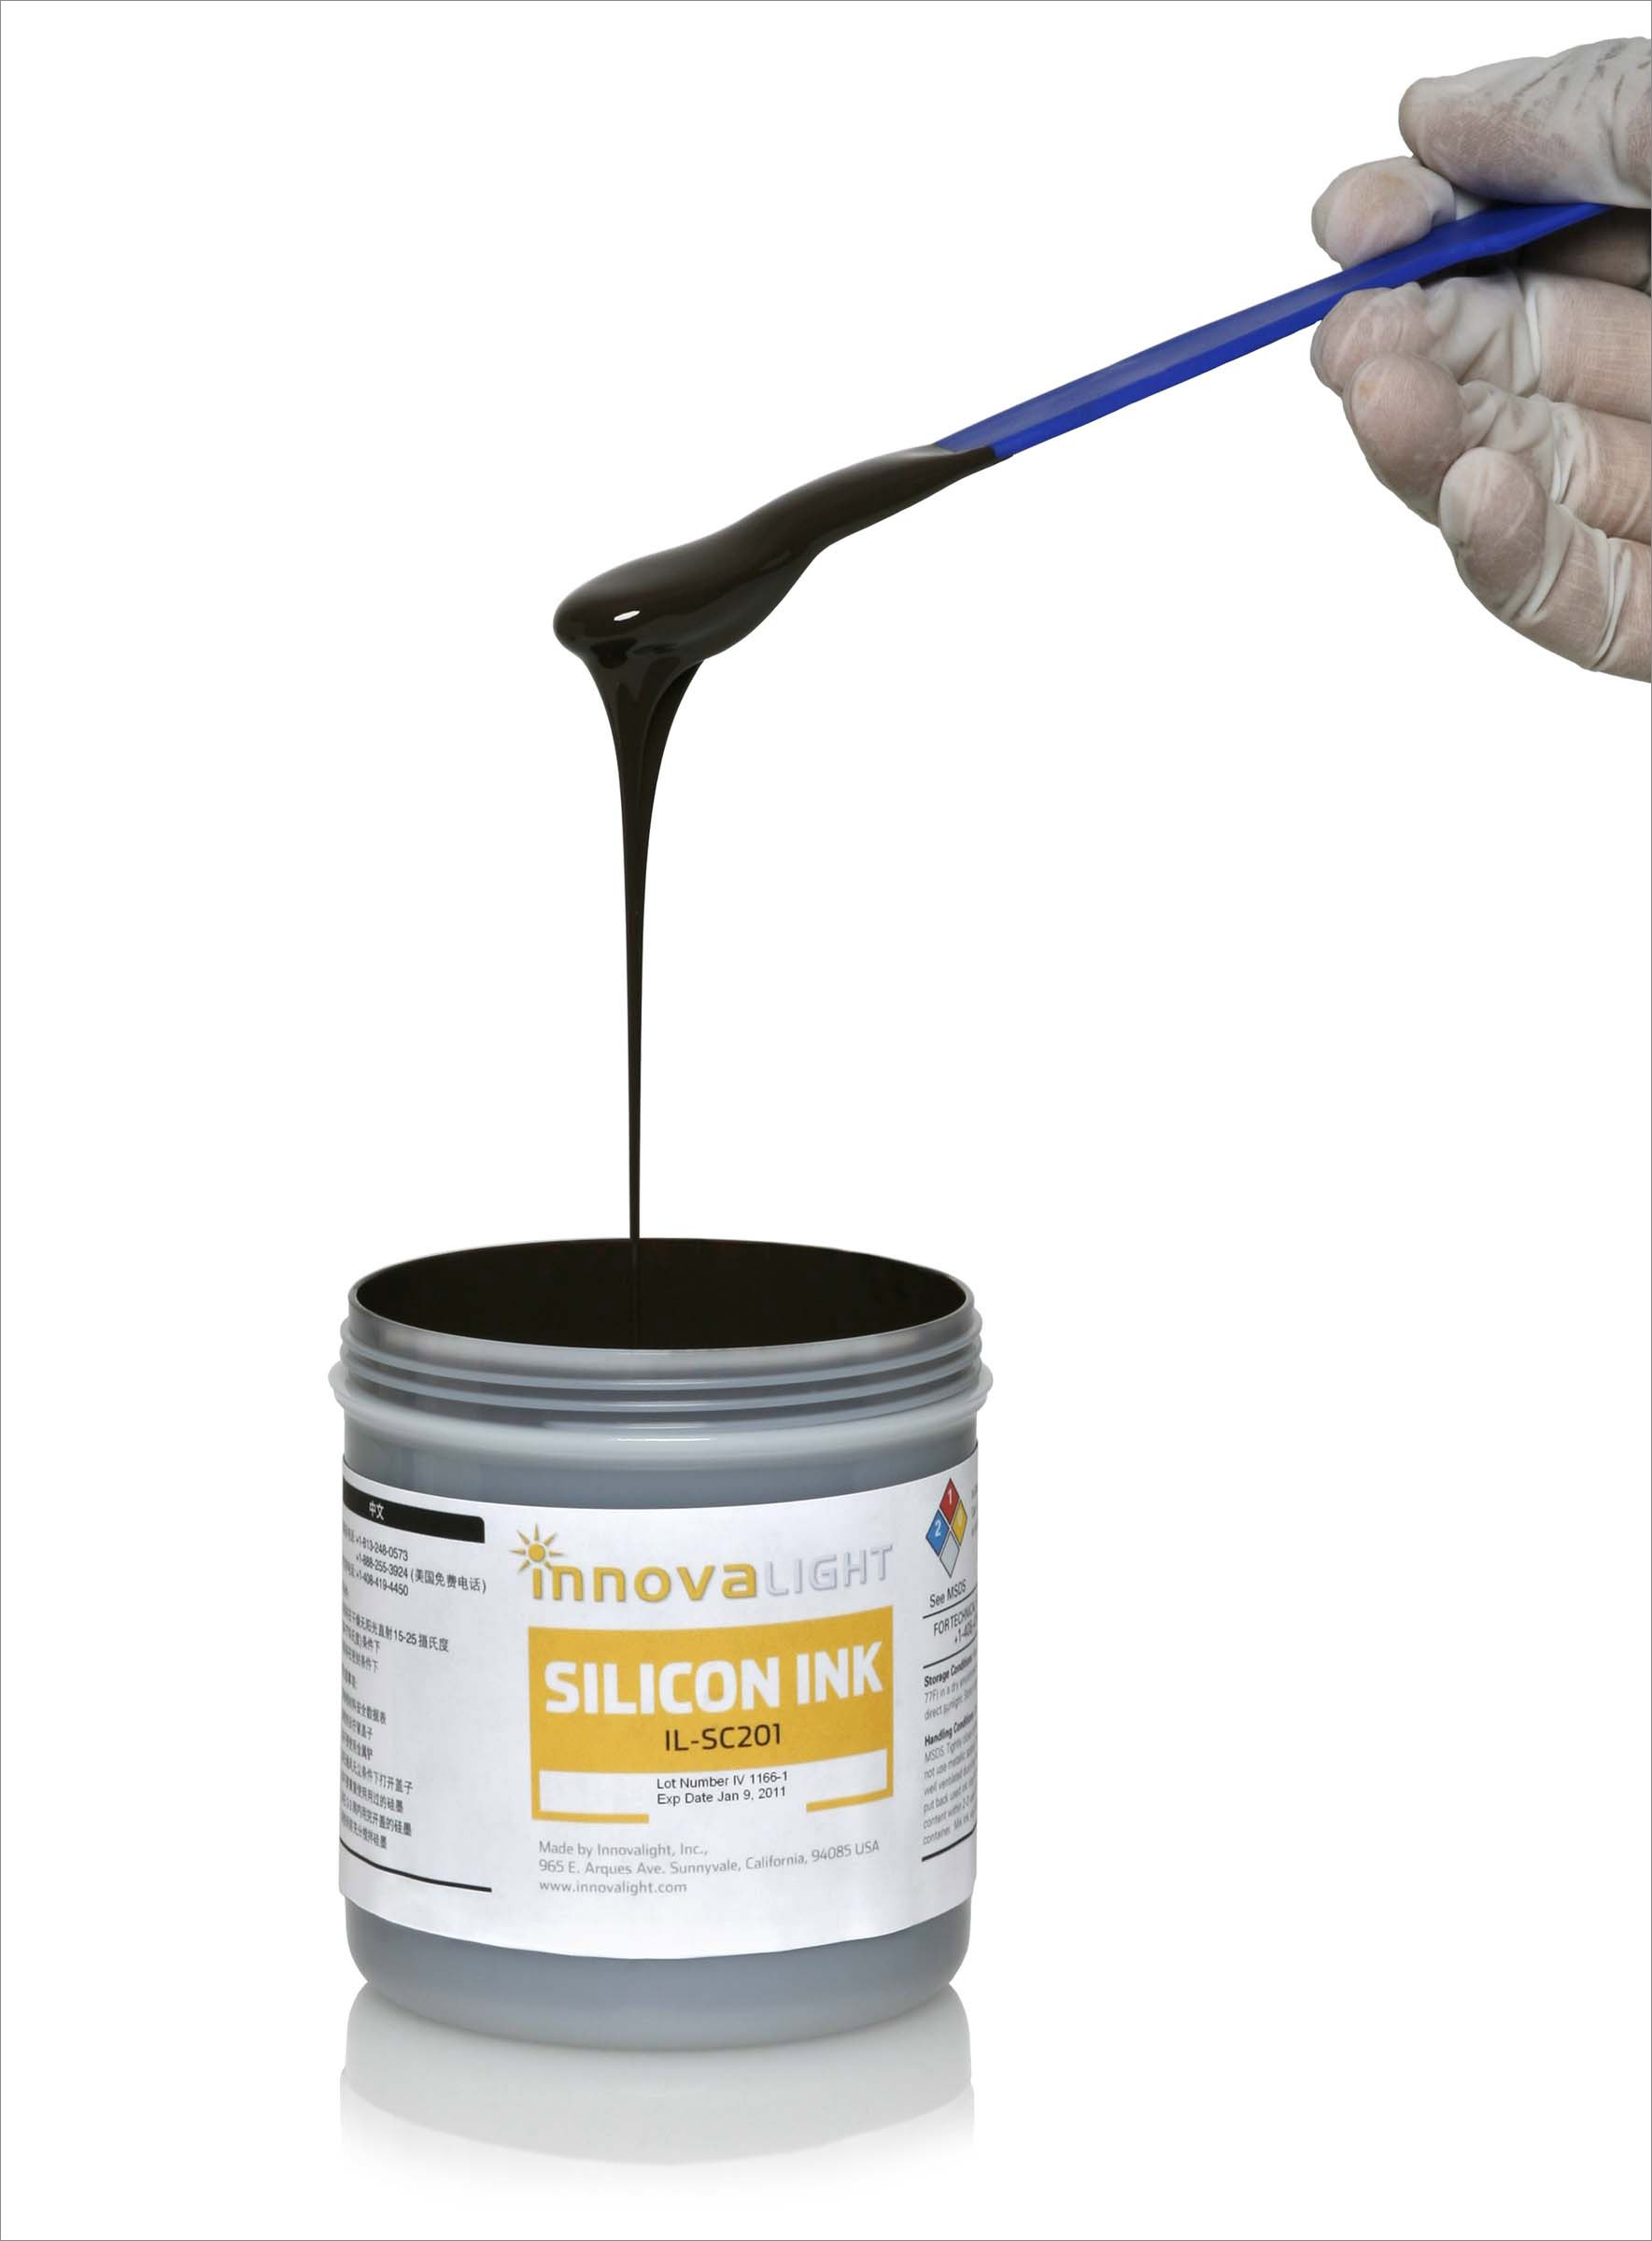 Doped-silicon inks from DuPont Innovalight enable the production of selective emitter solar cells with the addition of a single screen printing step.